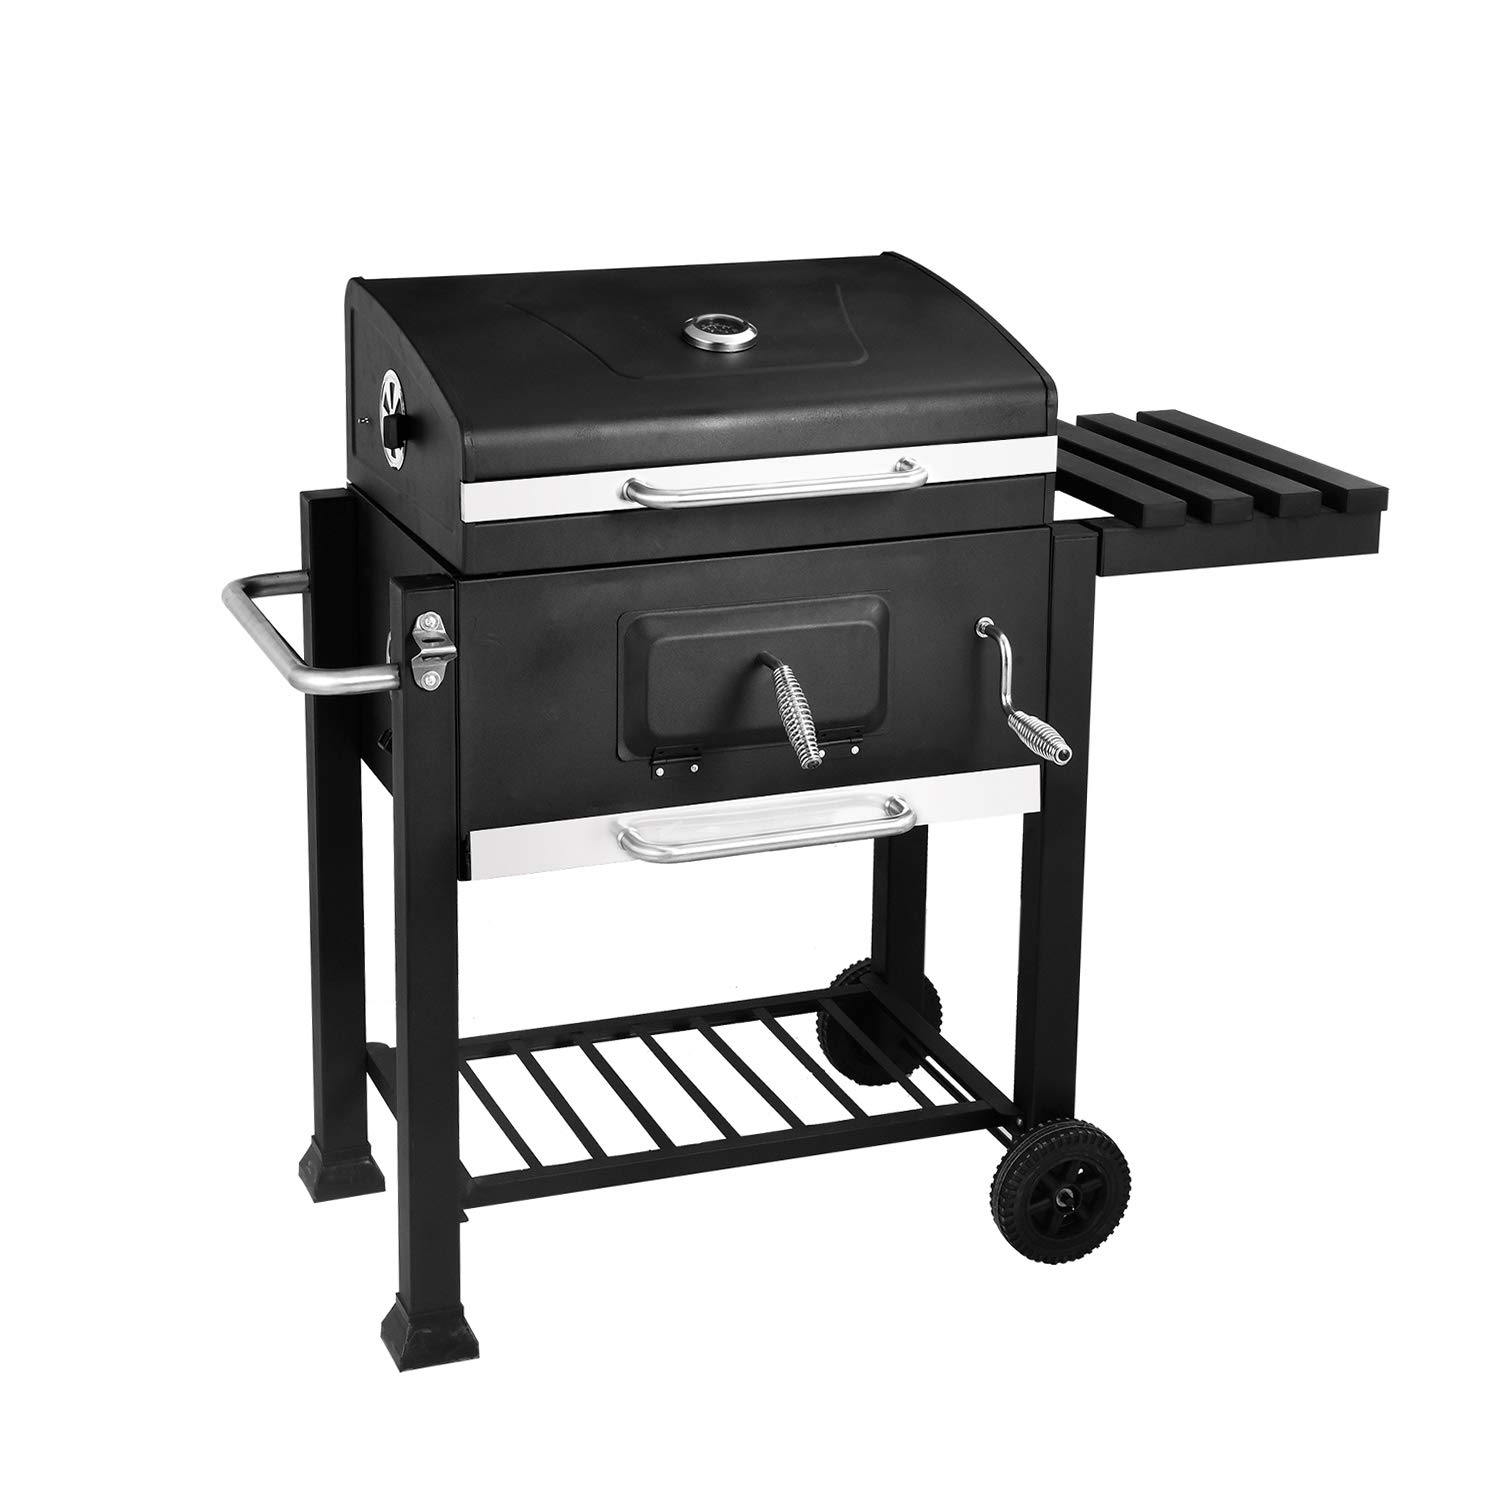 soges 24.8 inches Charcoal Grill Barbecue Grill with 2 Grids and Lifting Warming Rack BBQ Cooker with Thermometer Stainless Steel Camping Grill with Wheels and Adjustable Fire Grate, DS-30